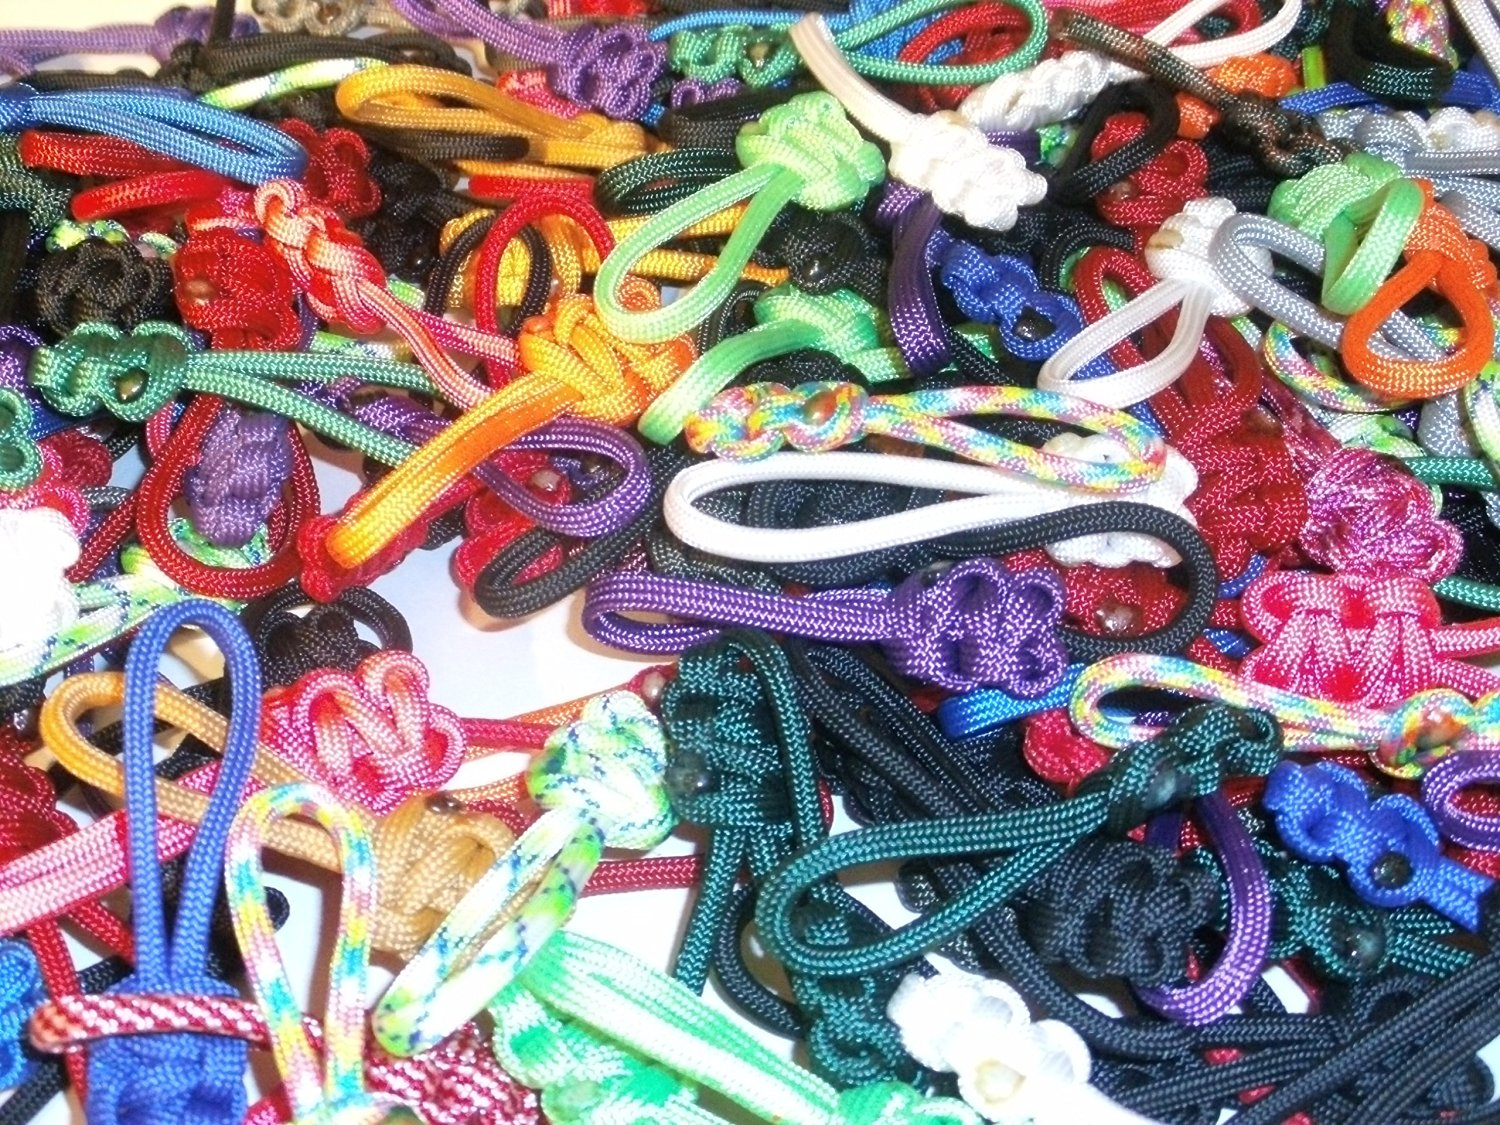 RedVex Paracord Zipper Pulls / Lanyards - Lot of 3 - ~2.5 - Mixed Random Colors